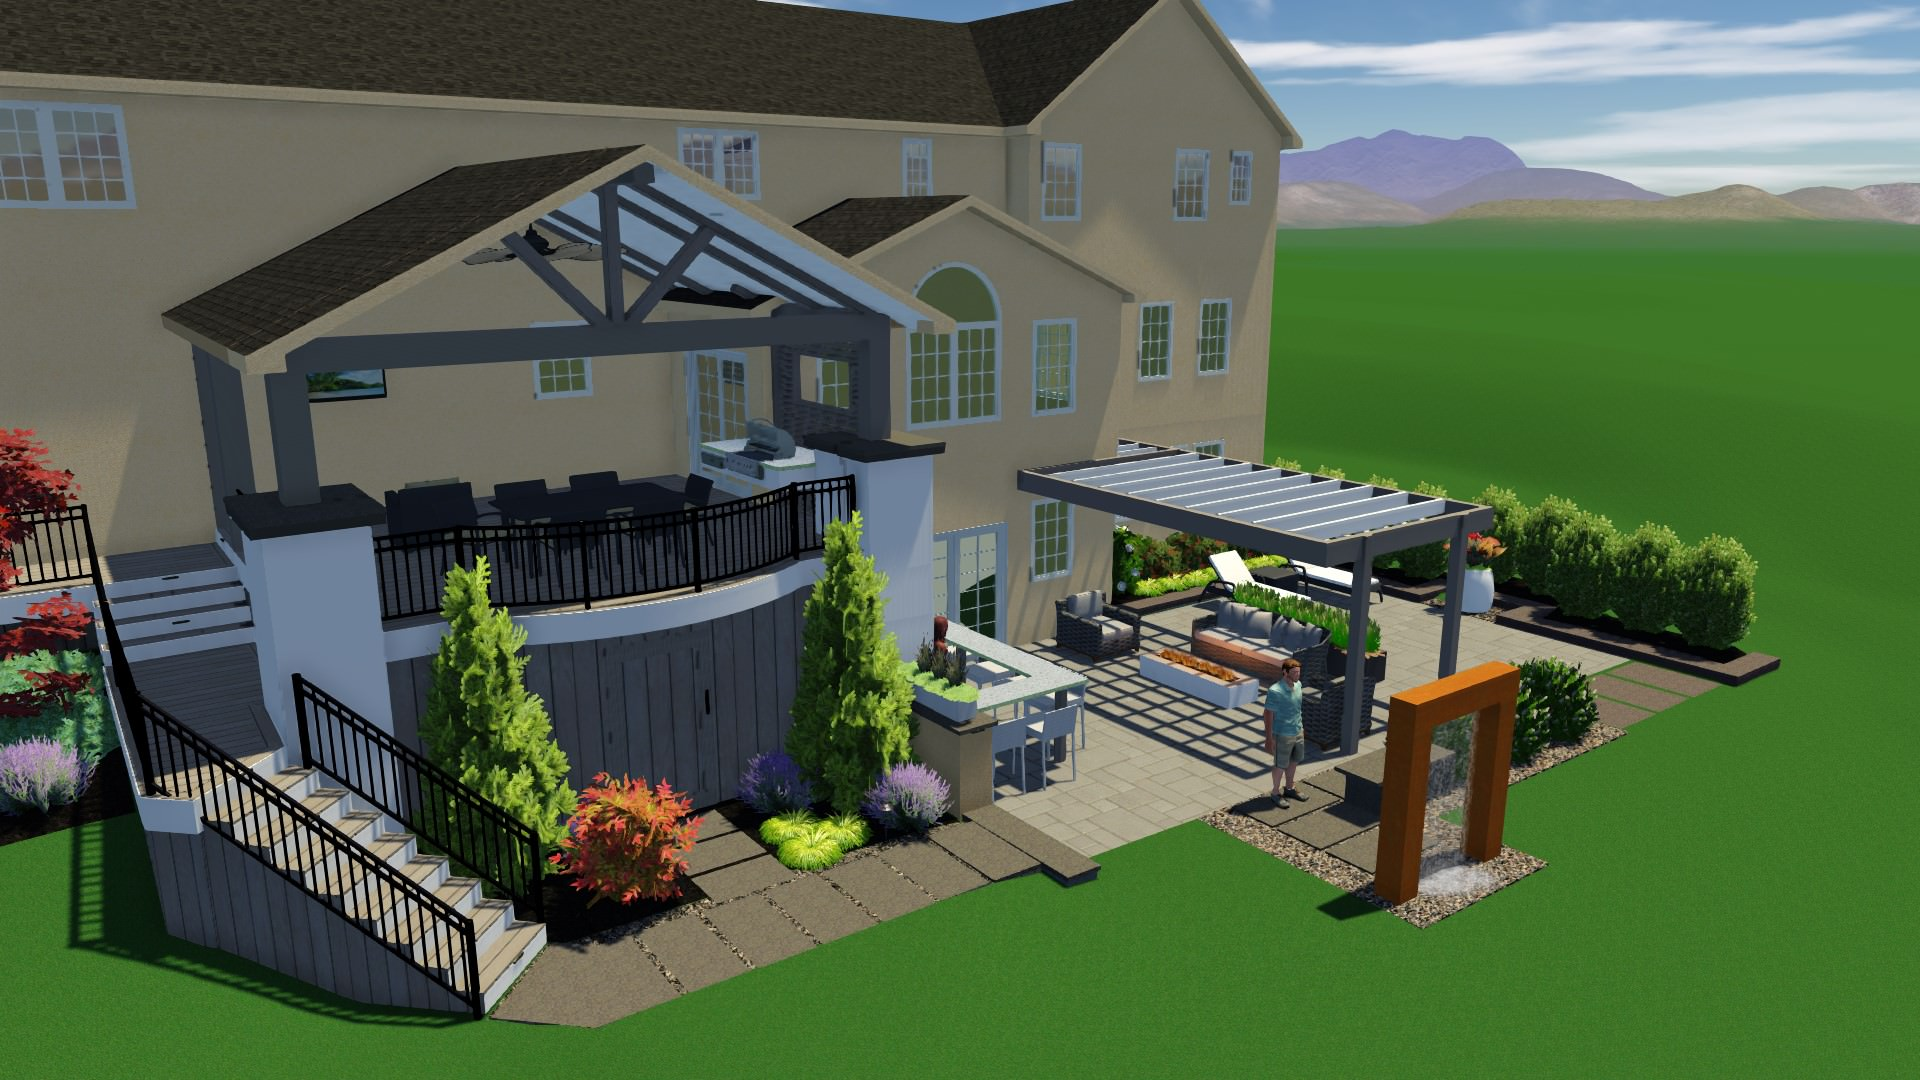 This design includes a deck space for immediate cooking/dining/lounging from the homeowner's dining room and a lower patio entertainment and relaxation space outside of the finished basement!